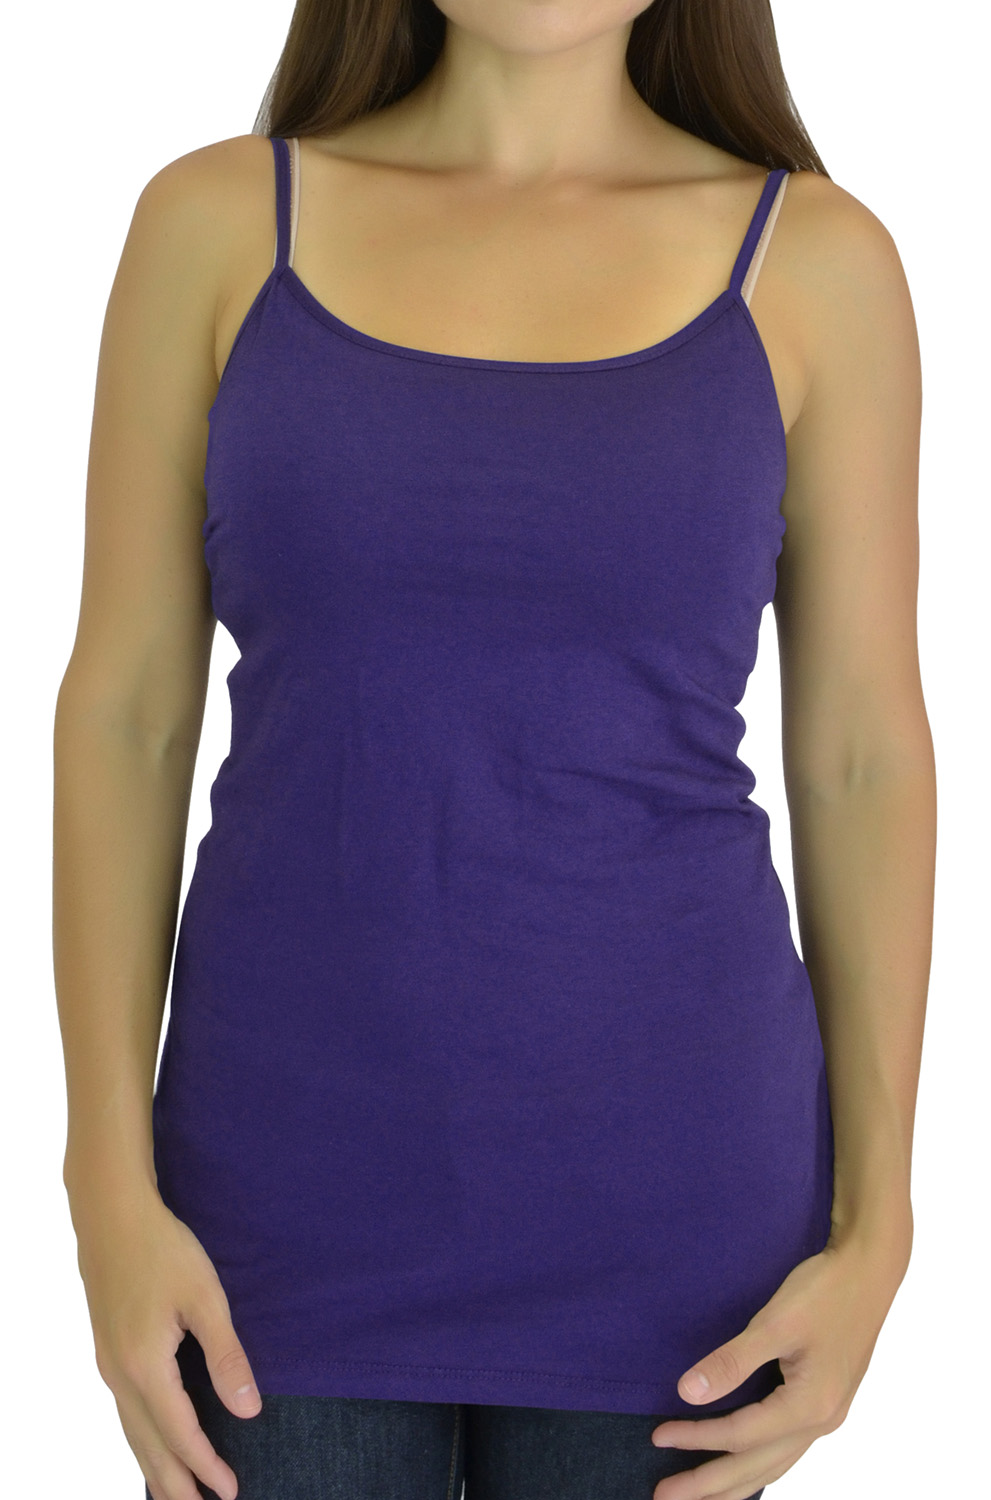 Belle Donne Tanktop for Women Extra Long Cami Tank Top with Built in Shelf Bra Cotton - Purple Small